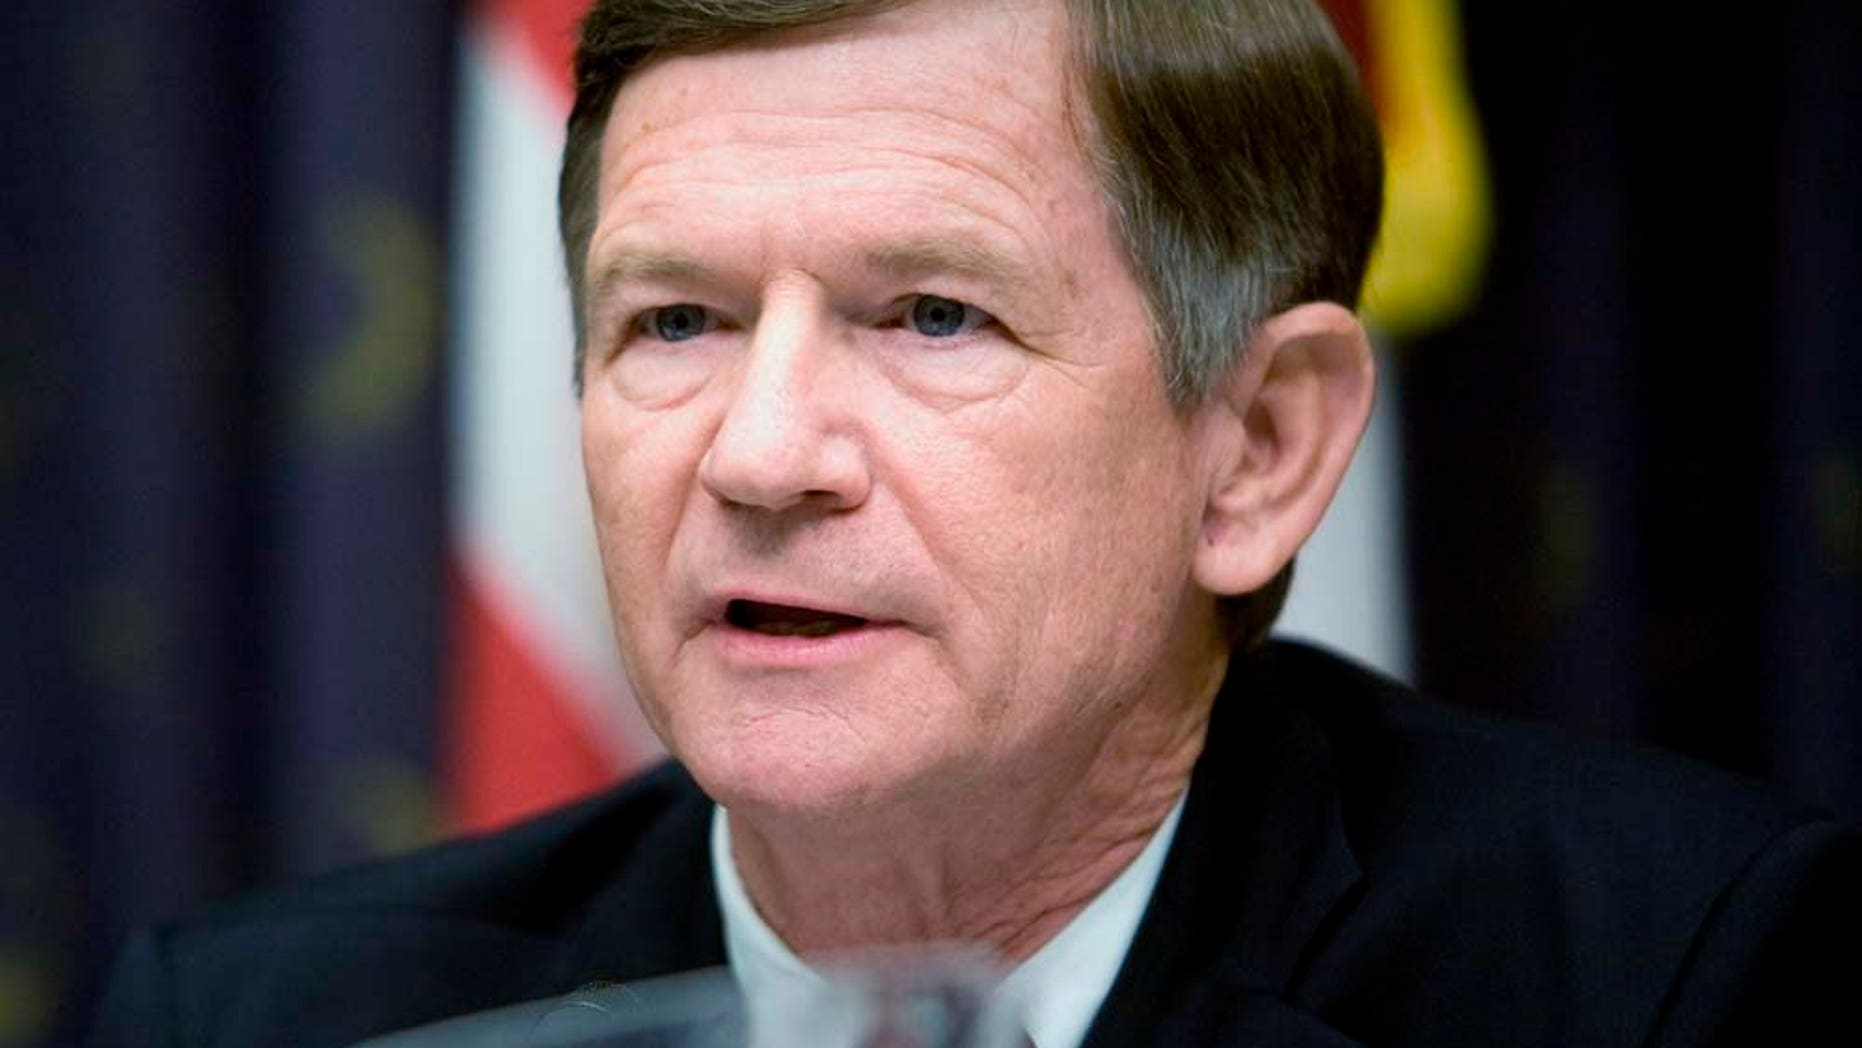 WASHINGTON - JUNE 20:  Committee ranking member Representative Lamar Smith (R-TX)speaks during a hearing of the House Judiciary Committee on Capitol Hill June 20, 2008 in Washington, DC.  Scott McClellan a former White House press secretary for U.S. President George W. Bush, appeared before the committee to testify about the leak CIA of agent Valerie Plame's identity.   (Photo by Brendan Smialowski/Getty Images)